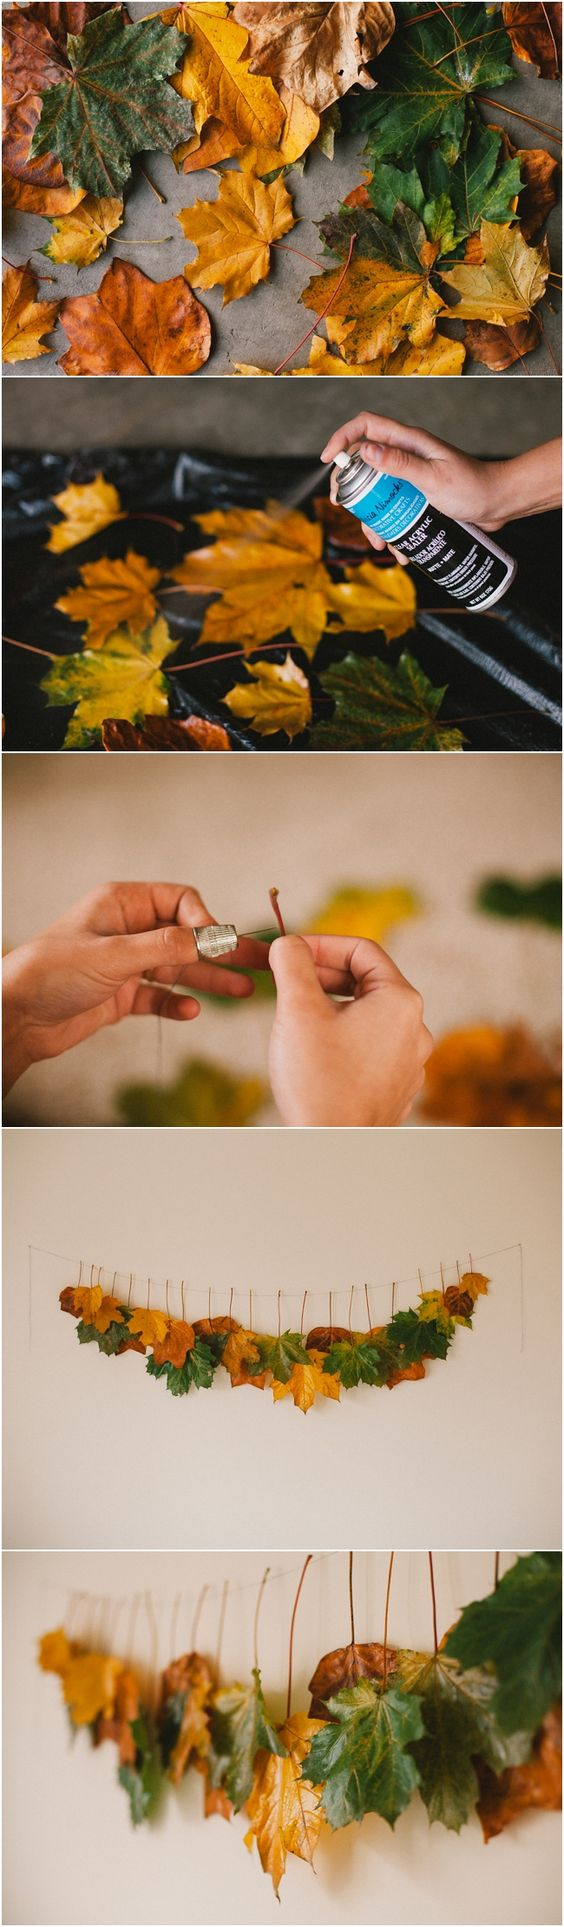 leaf garland - acrylic sealer, pin through the stem, hang on a string: